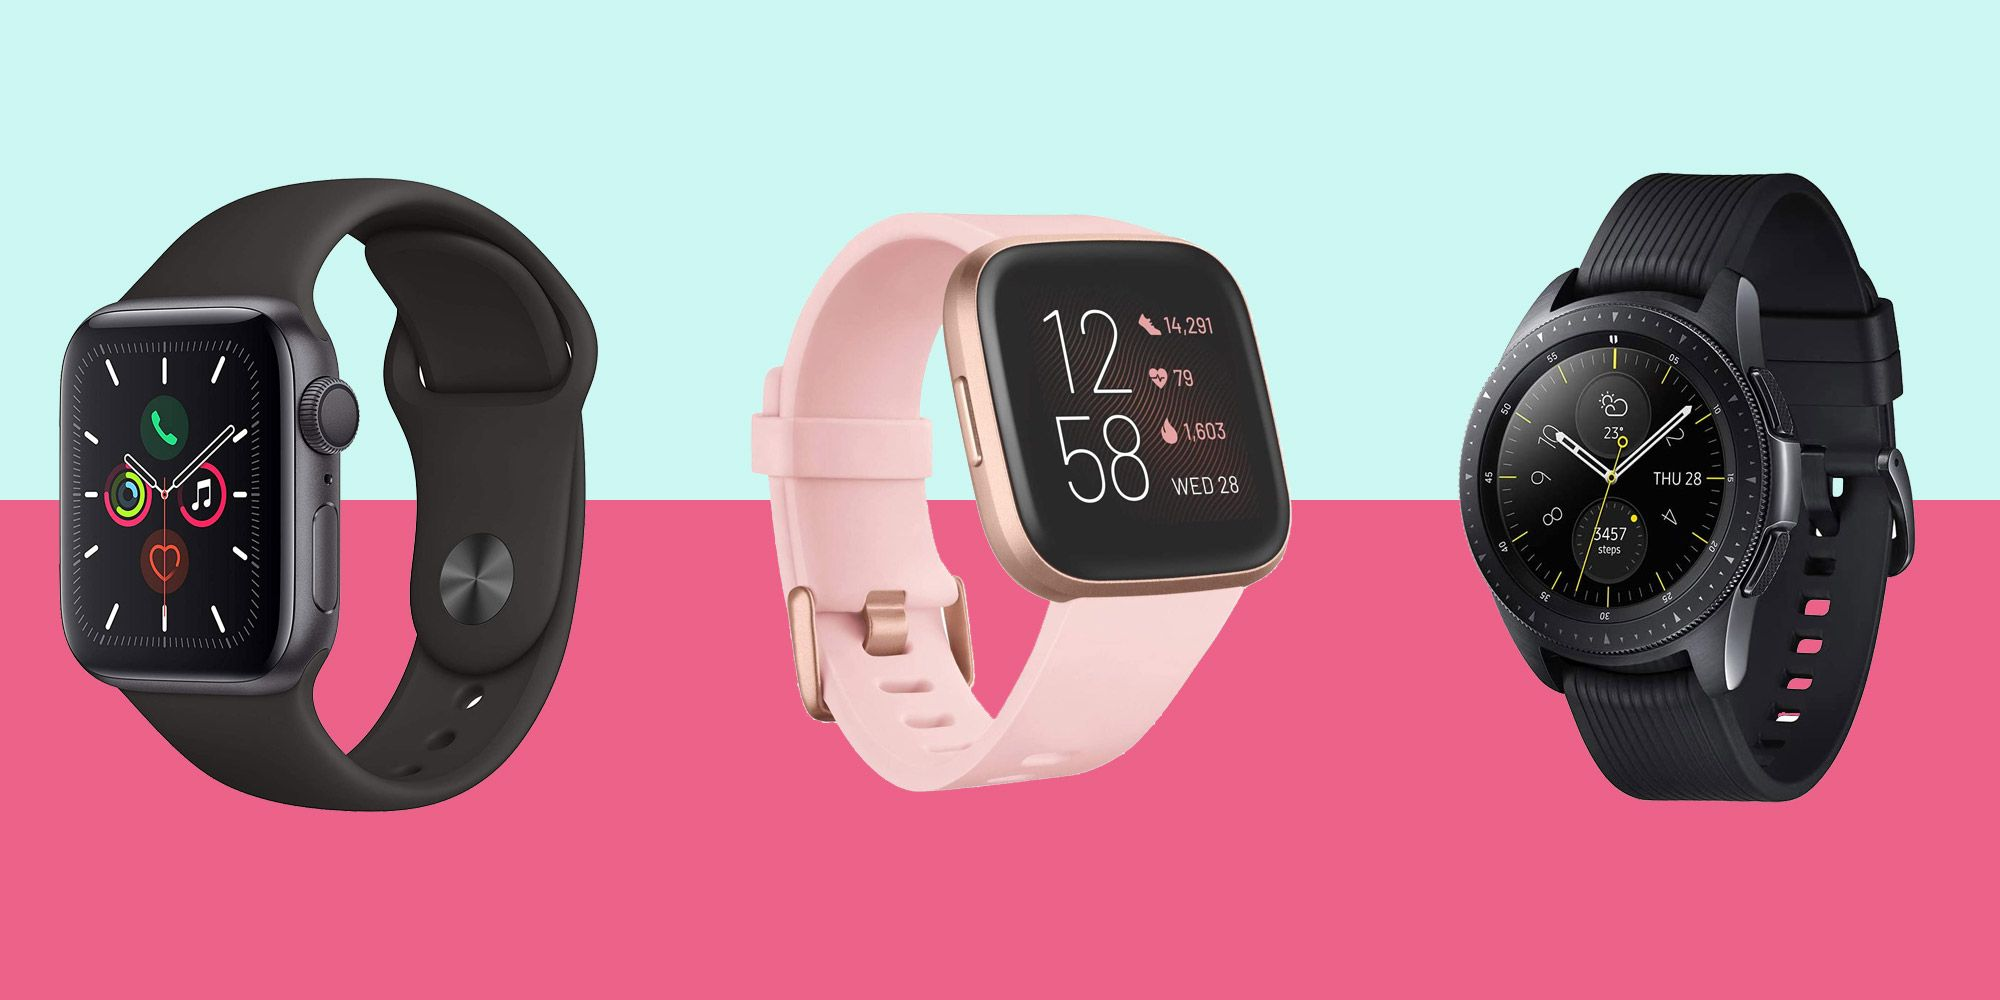 Best smartwatches 2020: 10 top wearables available now